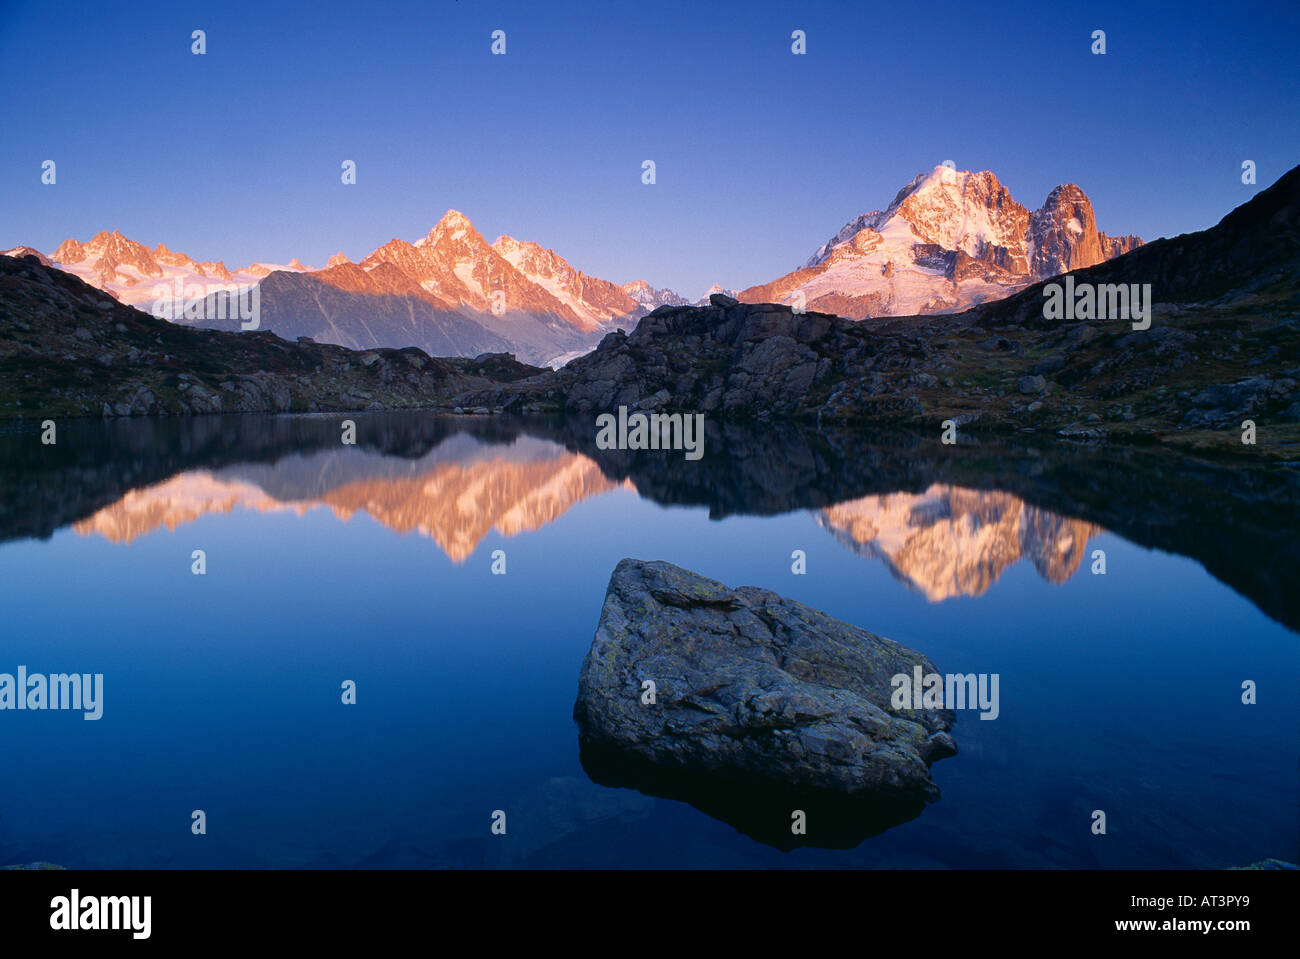 the Dru and Aiguille de Argentiere reflected in the Lac des Cheserys Massif du Mont Blanc nr Chamonix Savoie France Stock Photo